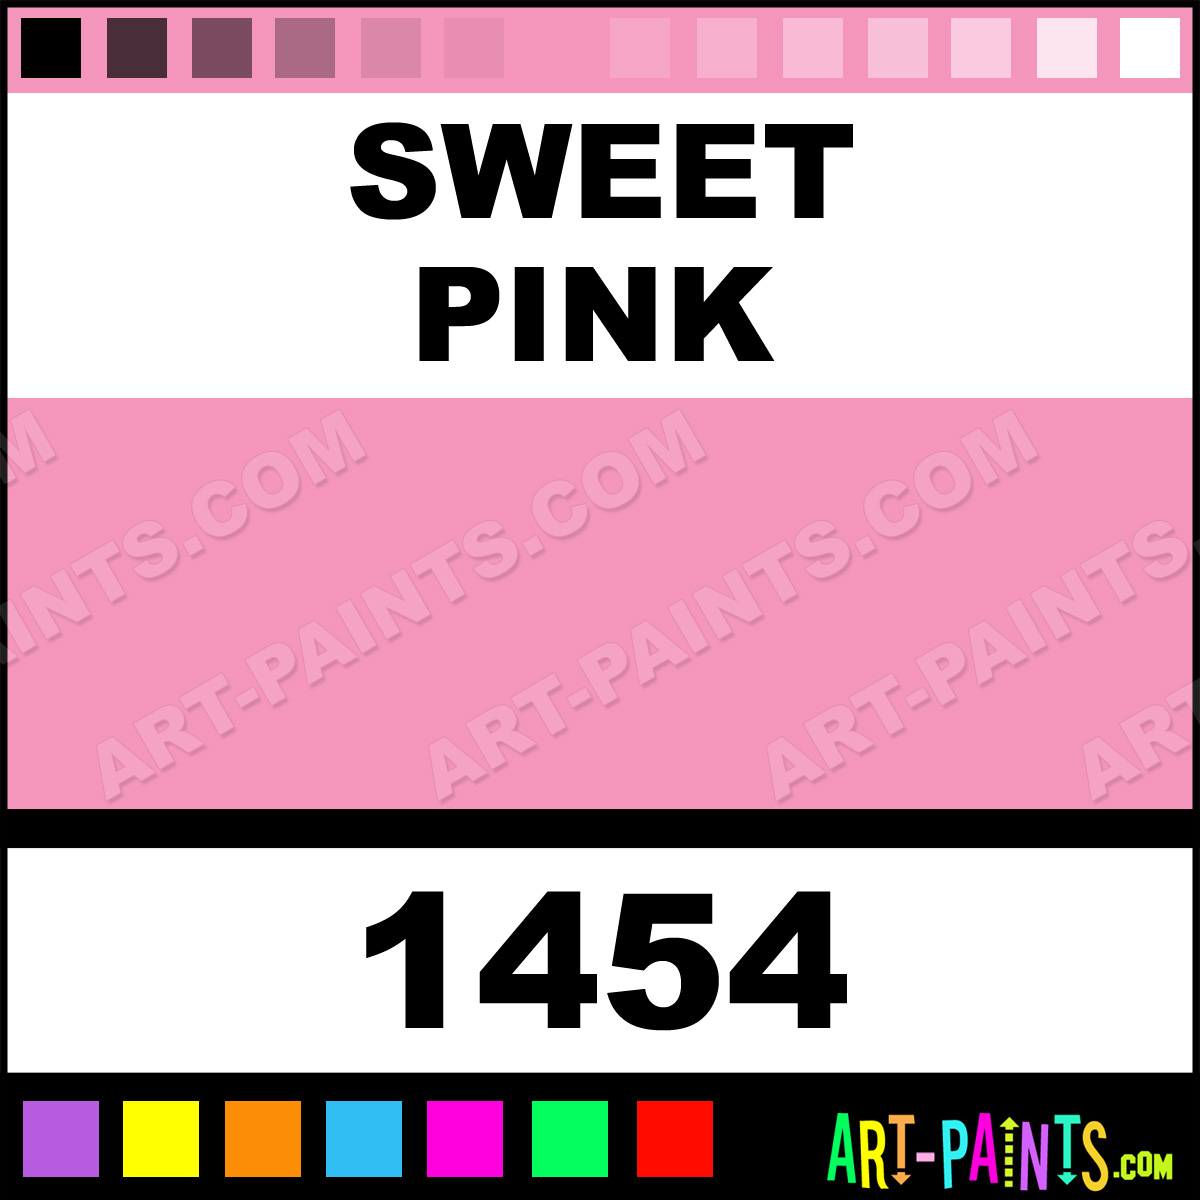 Sweet Pink Glossy Acrylic Paints 1454 Sweet Pink Paint